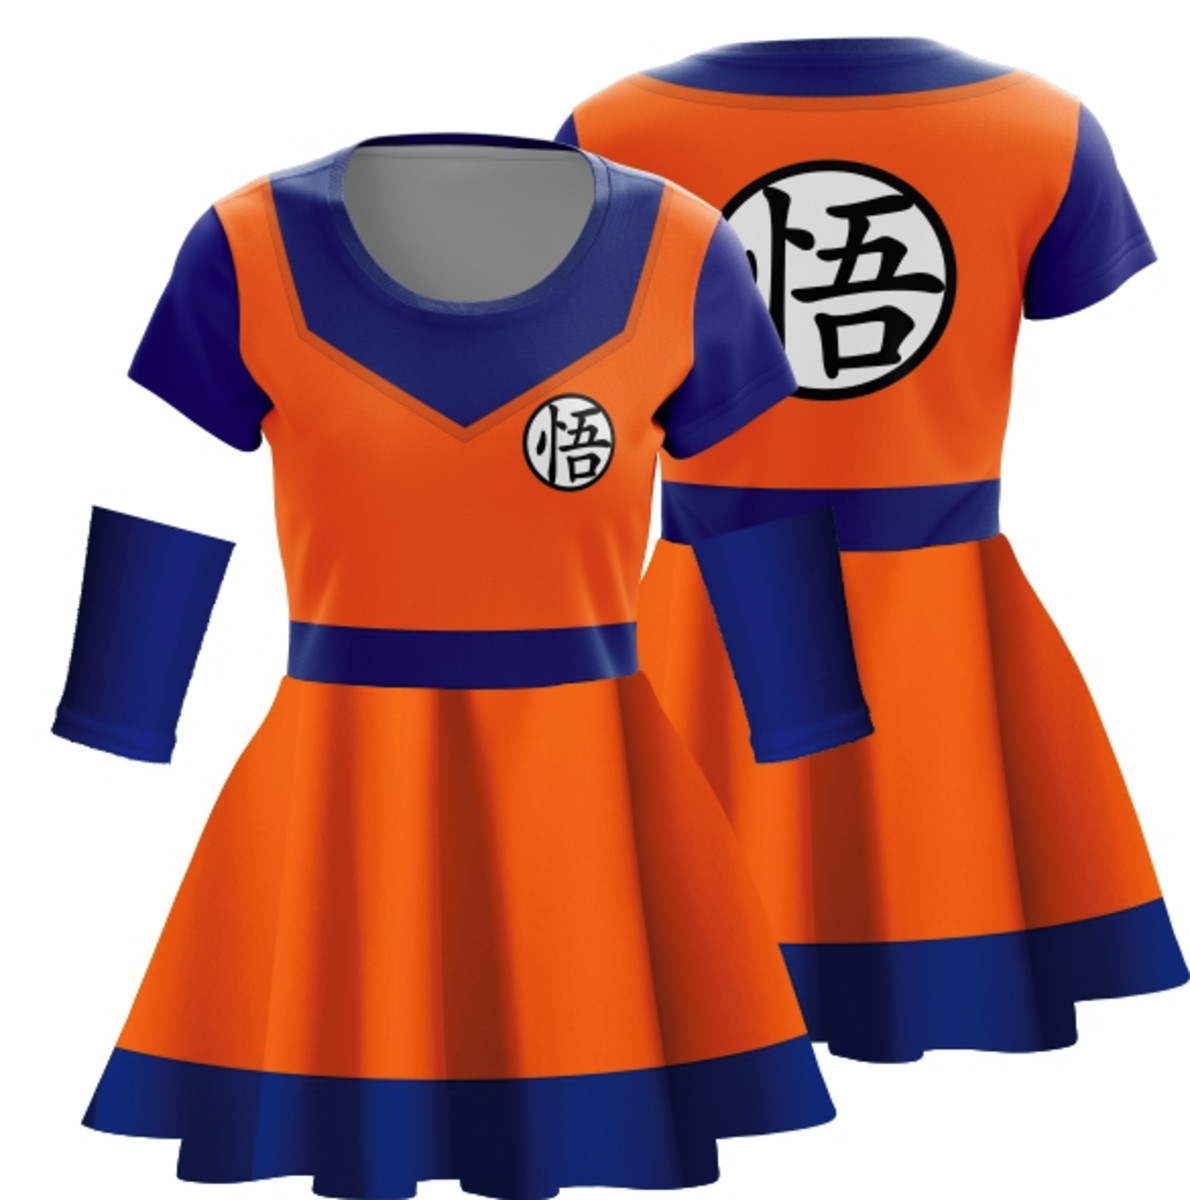 Vestido Goku Cosplay Dragon Ball Z Halloween Fantasia Anime no Elo7 ... 31eaac619cea